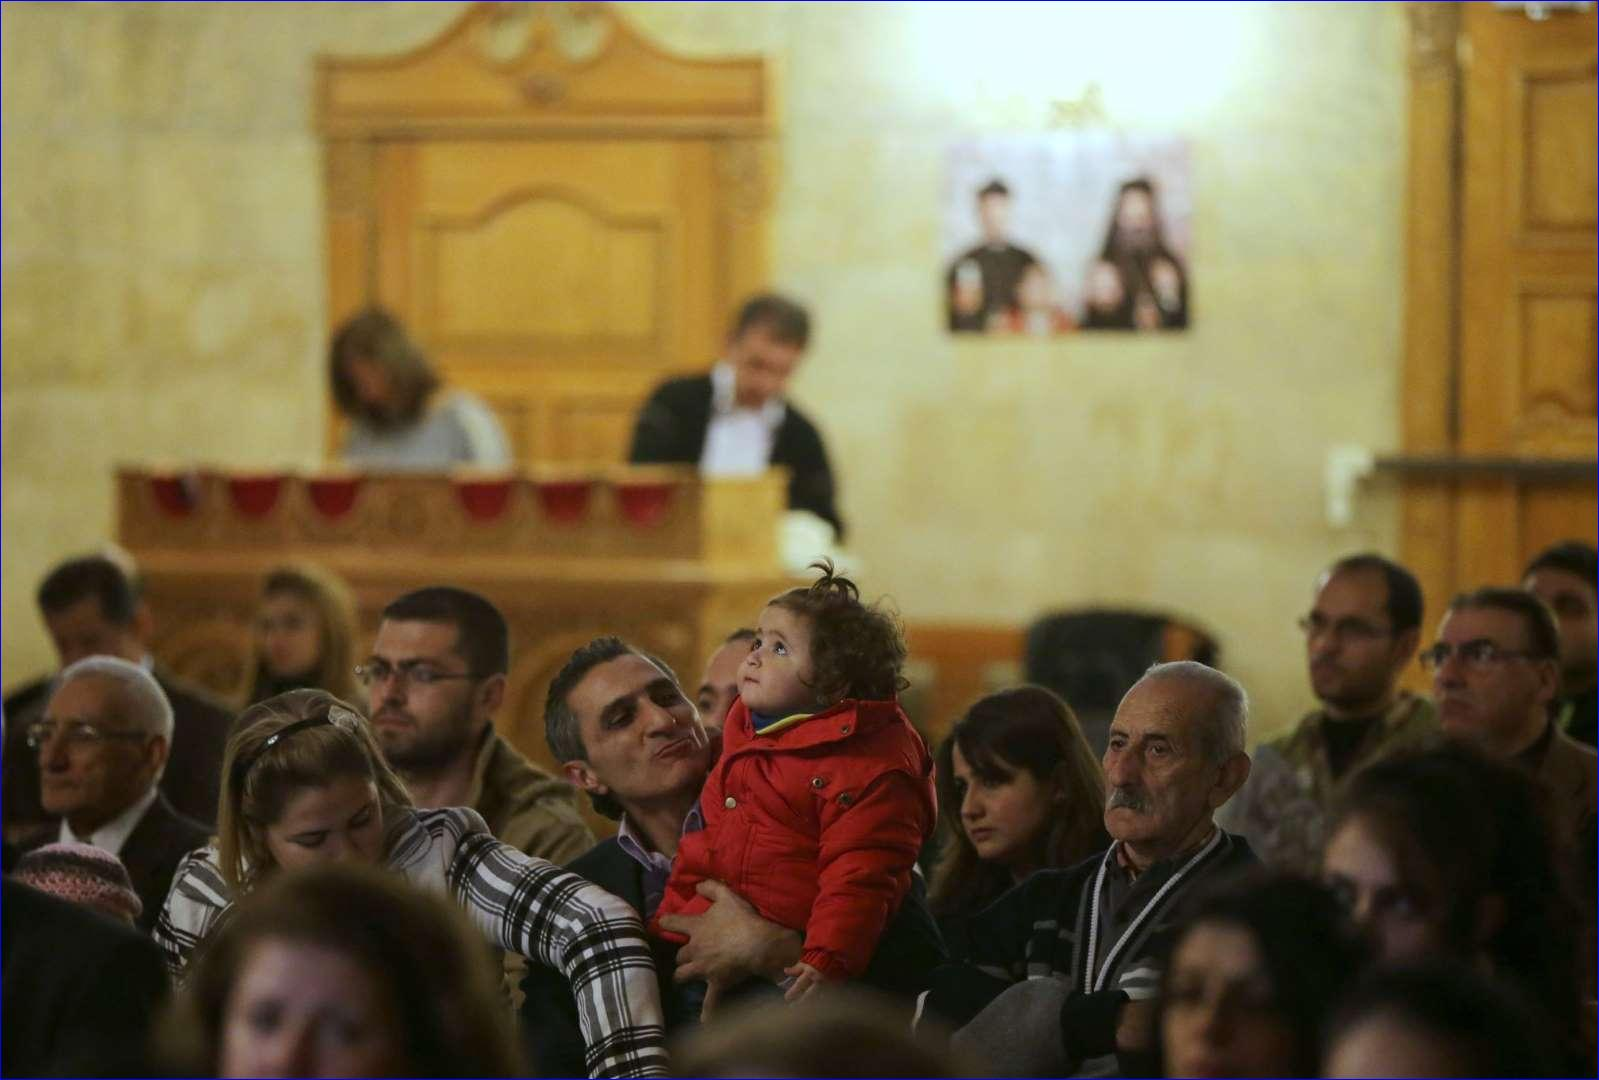 Syrian Christans look on during Divine Liturgy at the Greek Orthodox church in the Syrian government controlled area of Aleppo on November 16, 2014 (AFP).